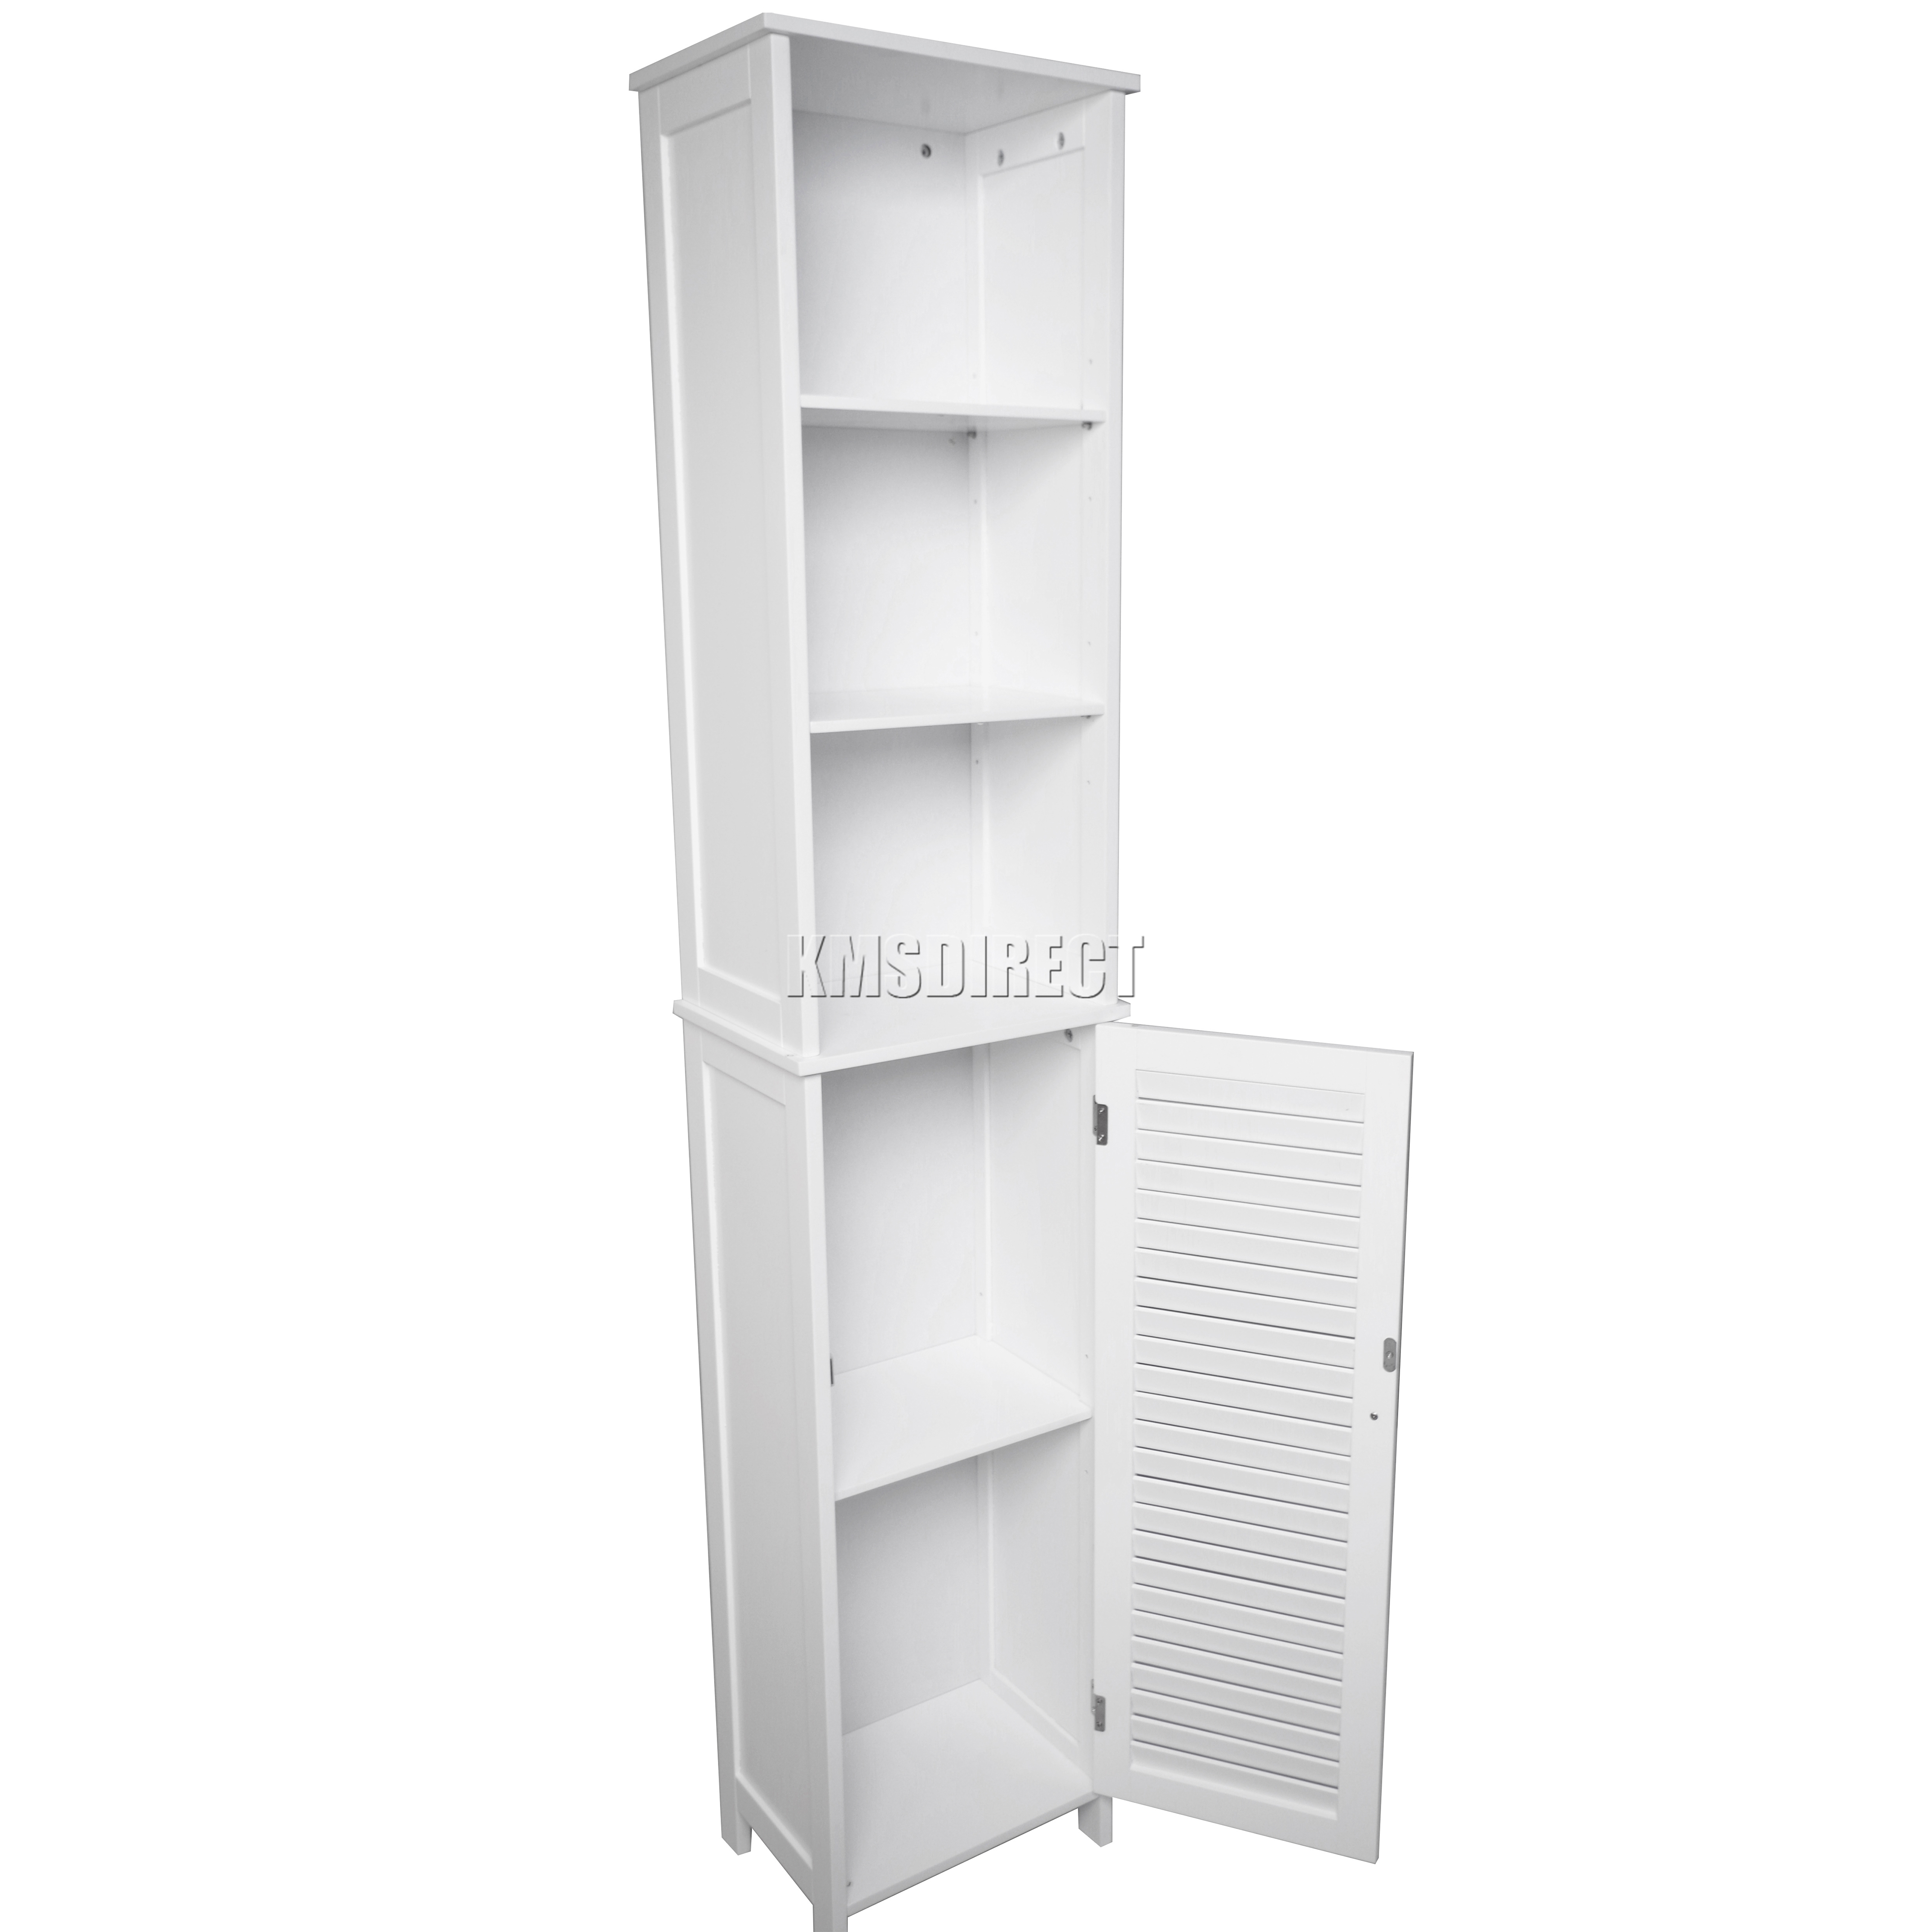 FoxHunter Wall Mount Wooden Bathroom Cabinet Tall Shelving Unit Storage Cupboard